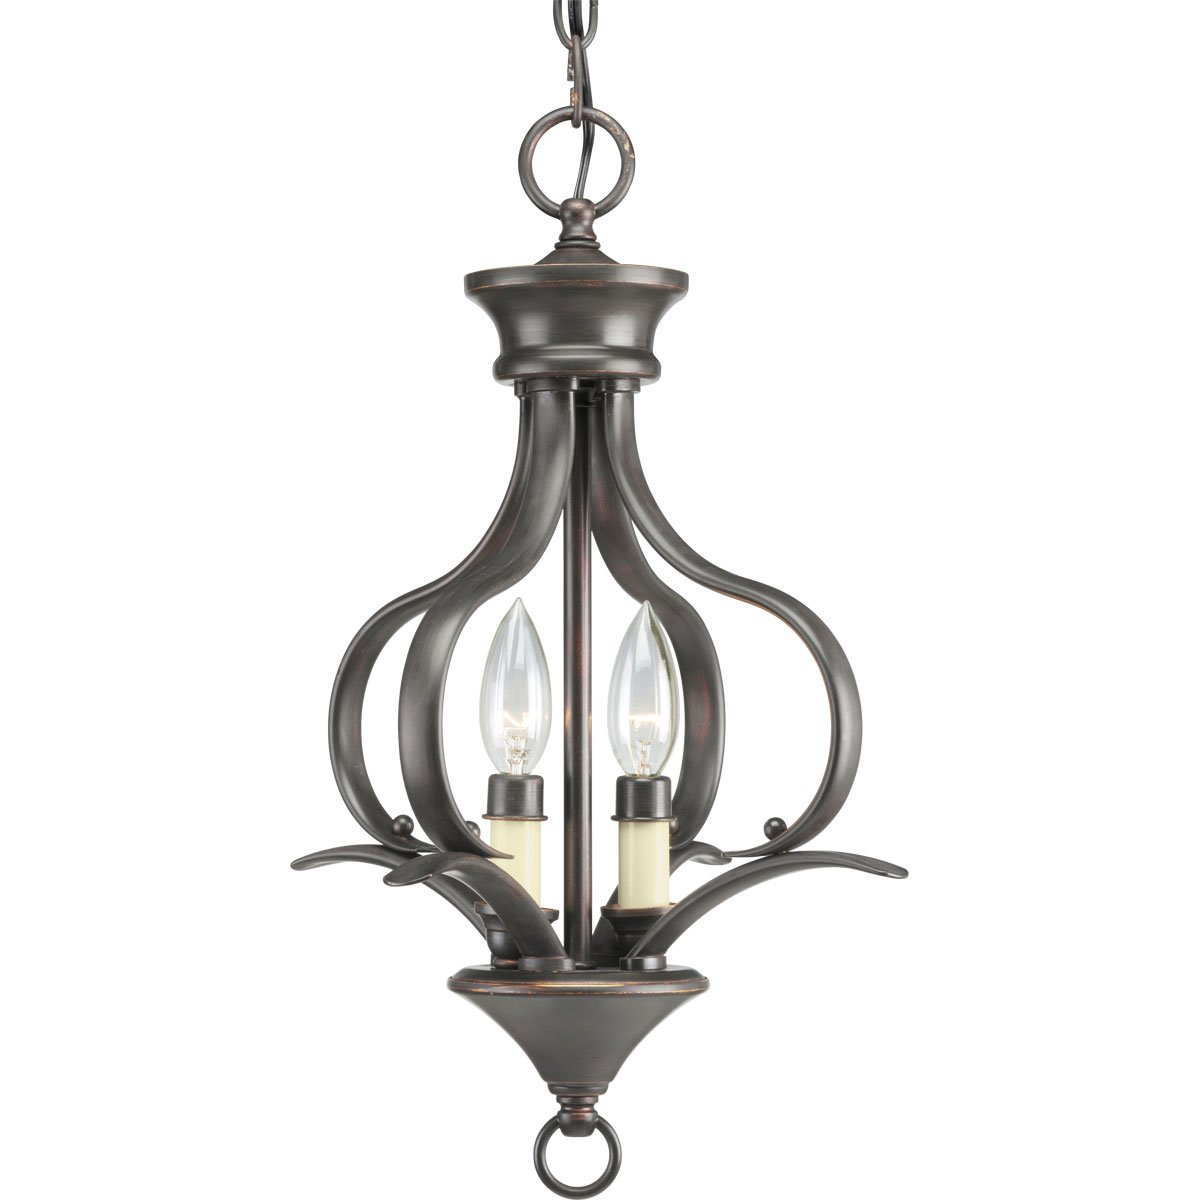 Progress lighting p3806 20 2 light foyer fixture antique bronze progress lighting p3806 20 2 light foyer fixture antique bronze chandeliers amazon aloadofball Choice Image